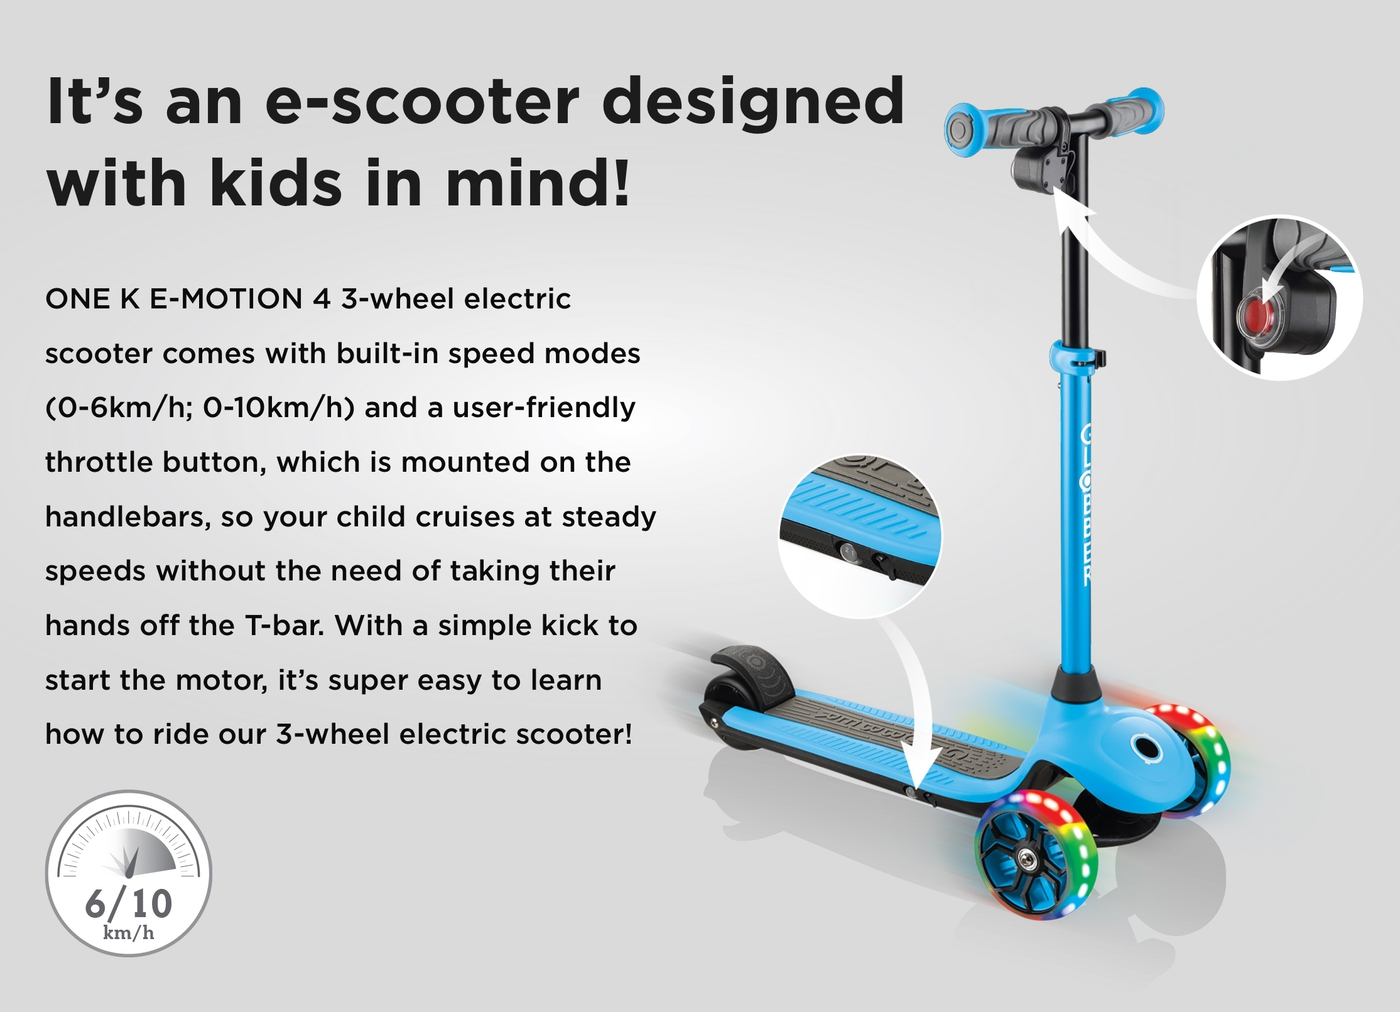 It's an e-scooter designed with kids in mind!